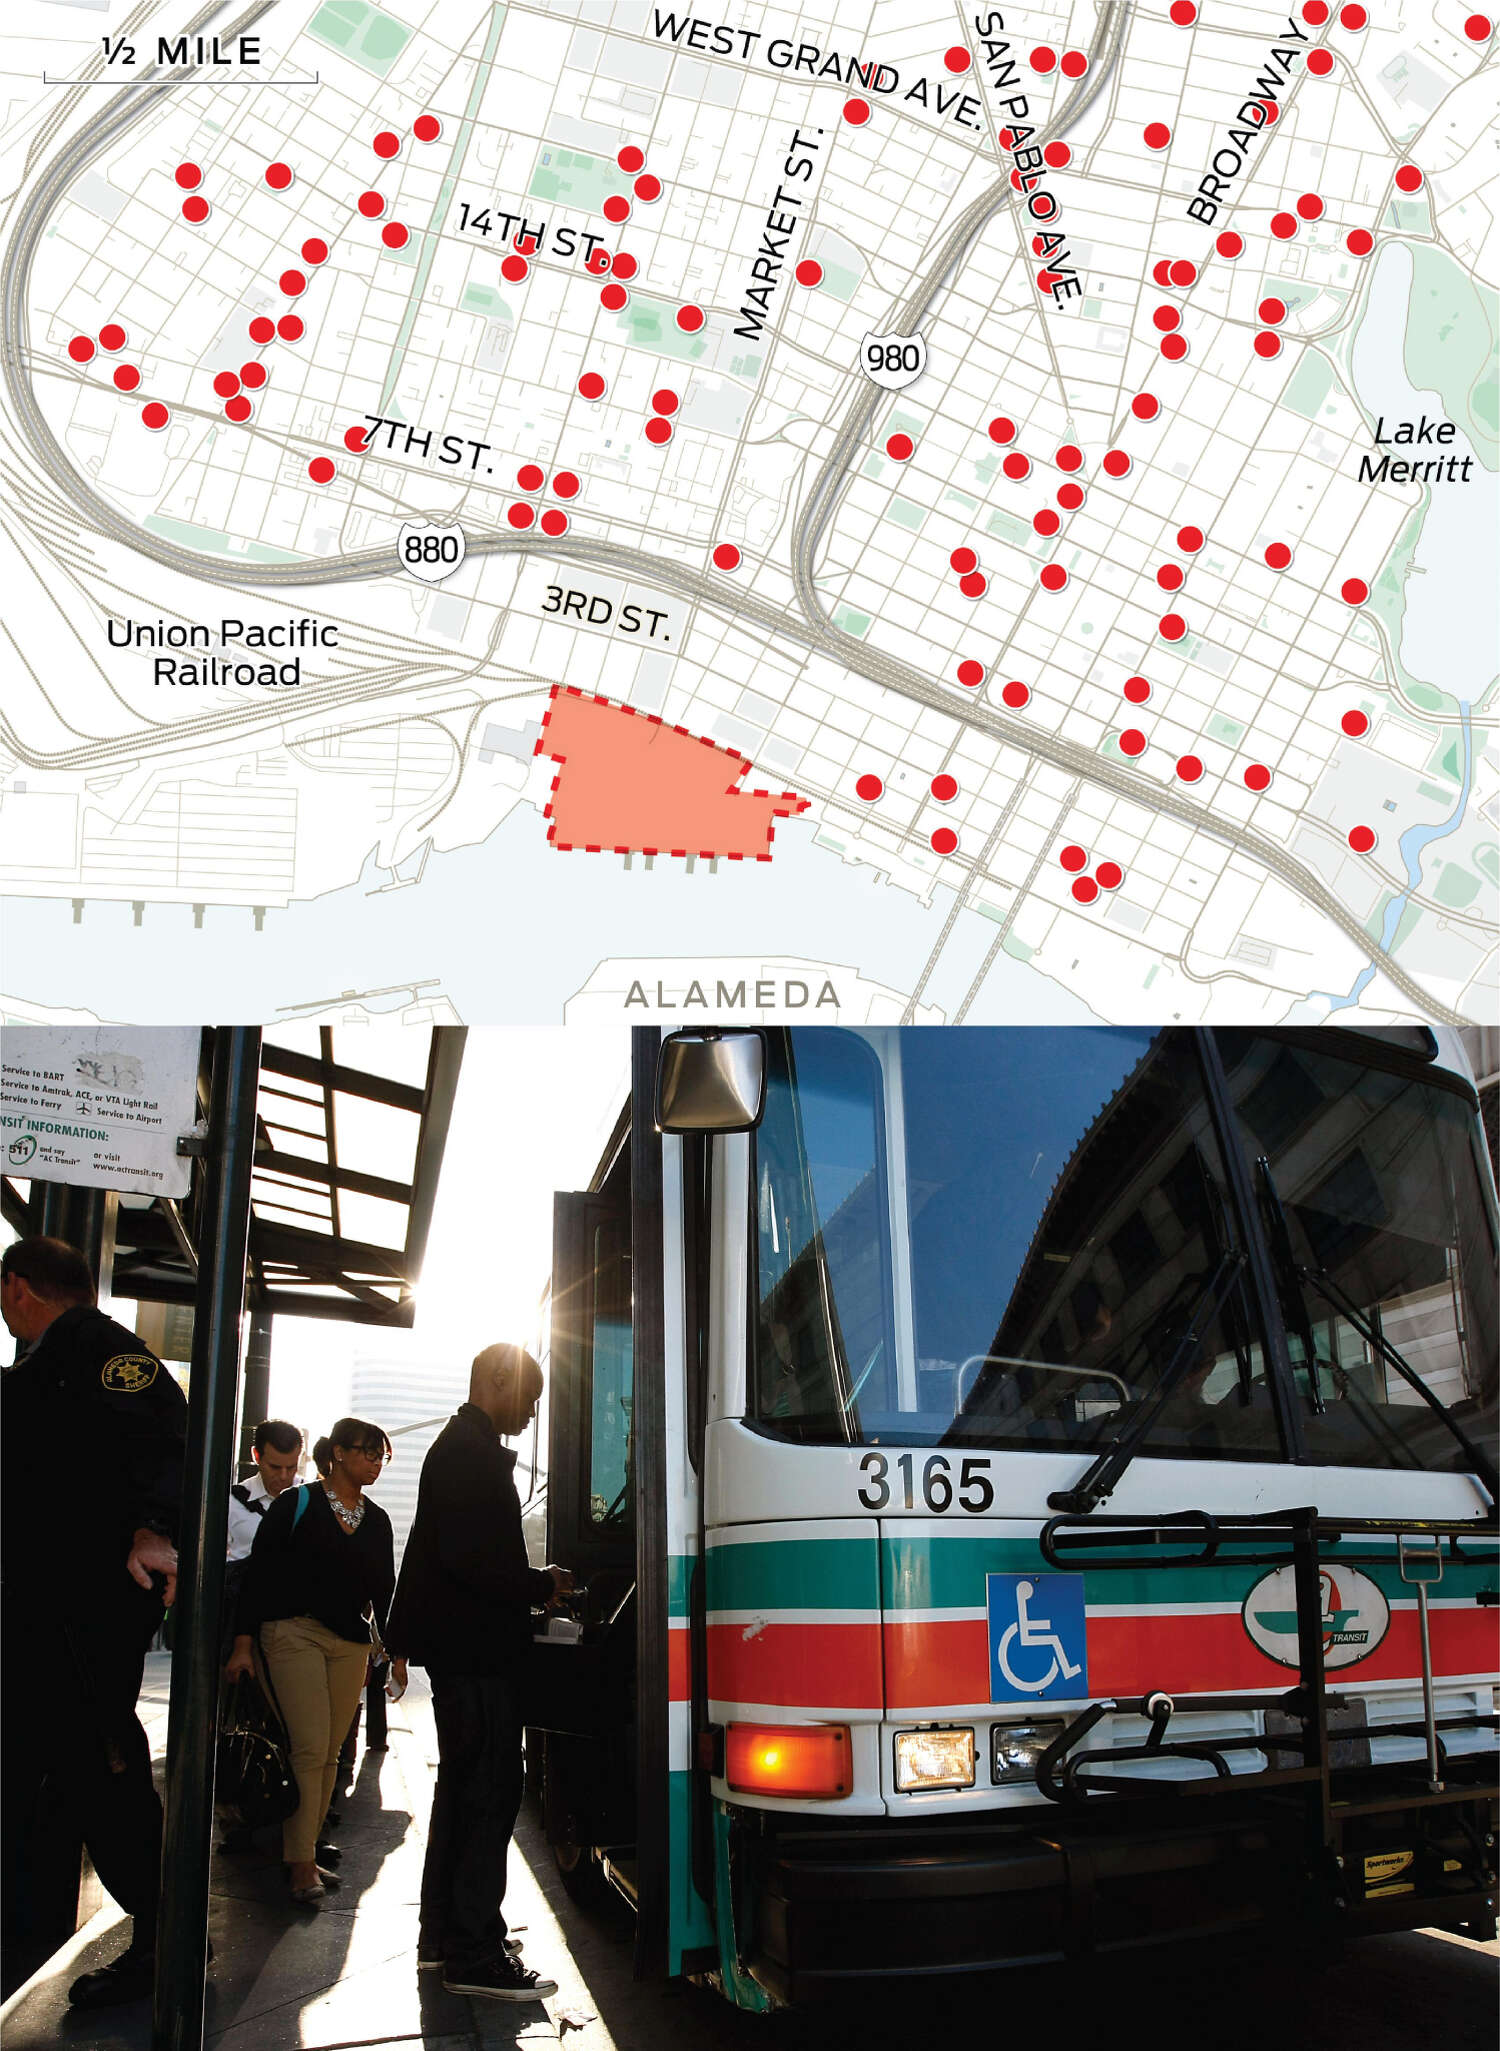 The map now plots the location of many of the AC Transit bus stops in that area.